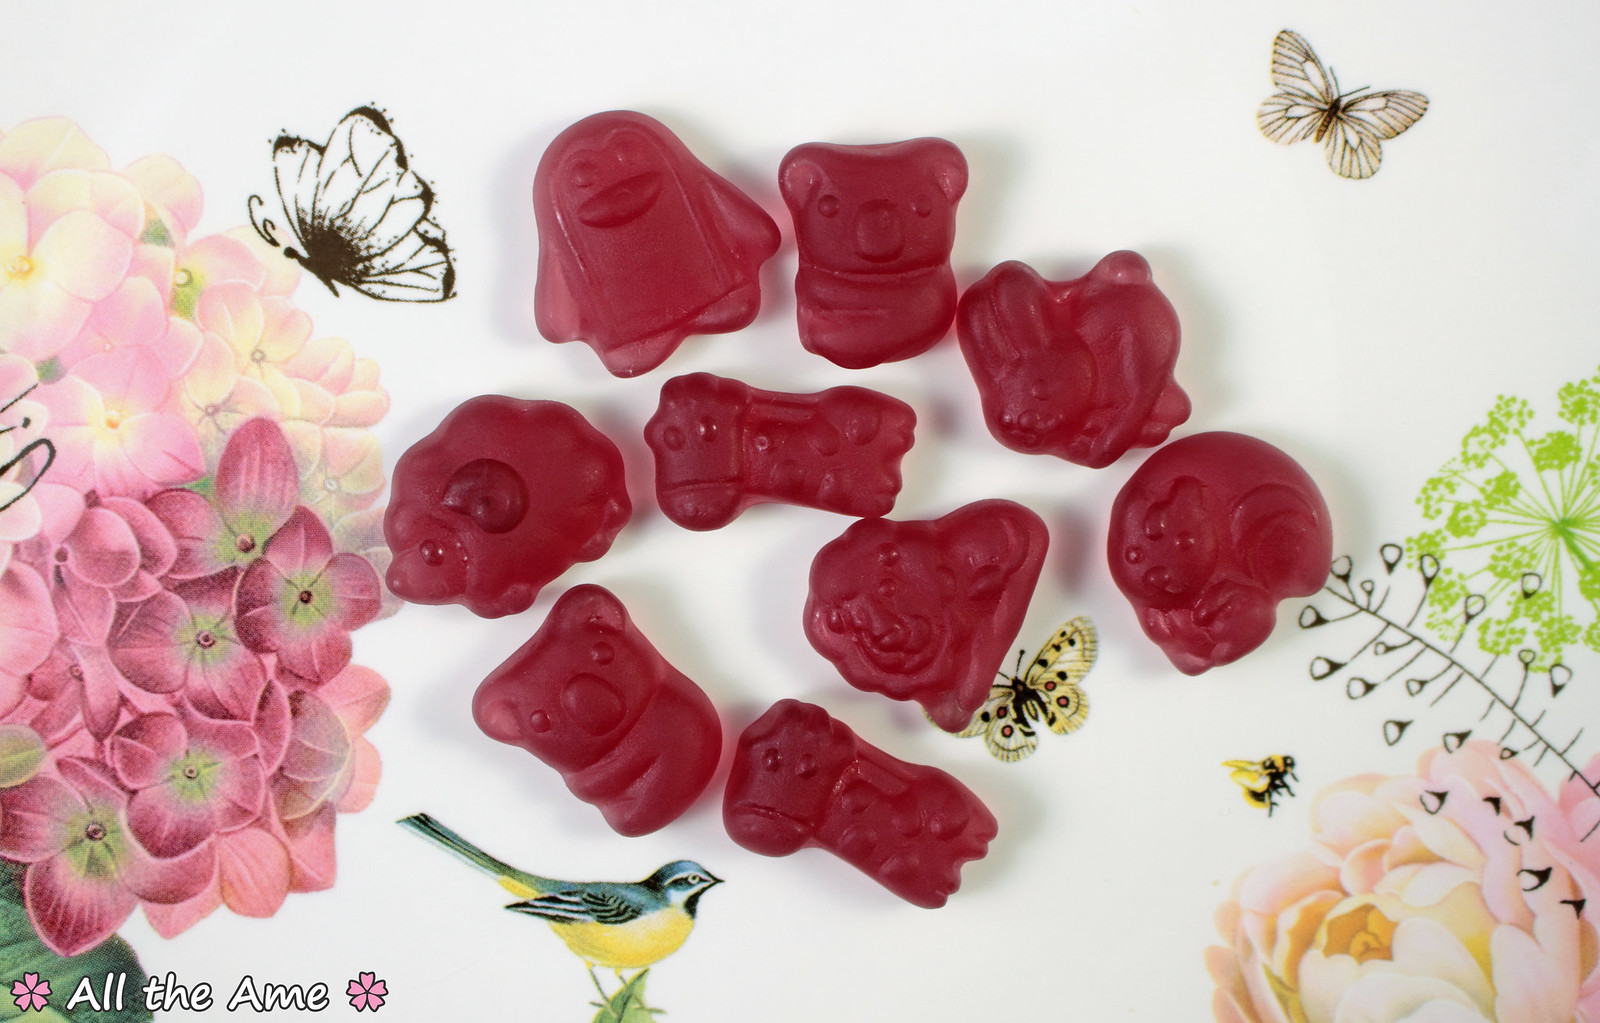 Animal Land Gummies